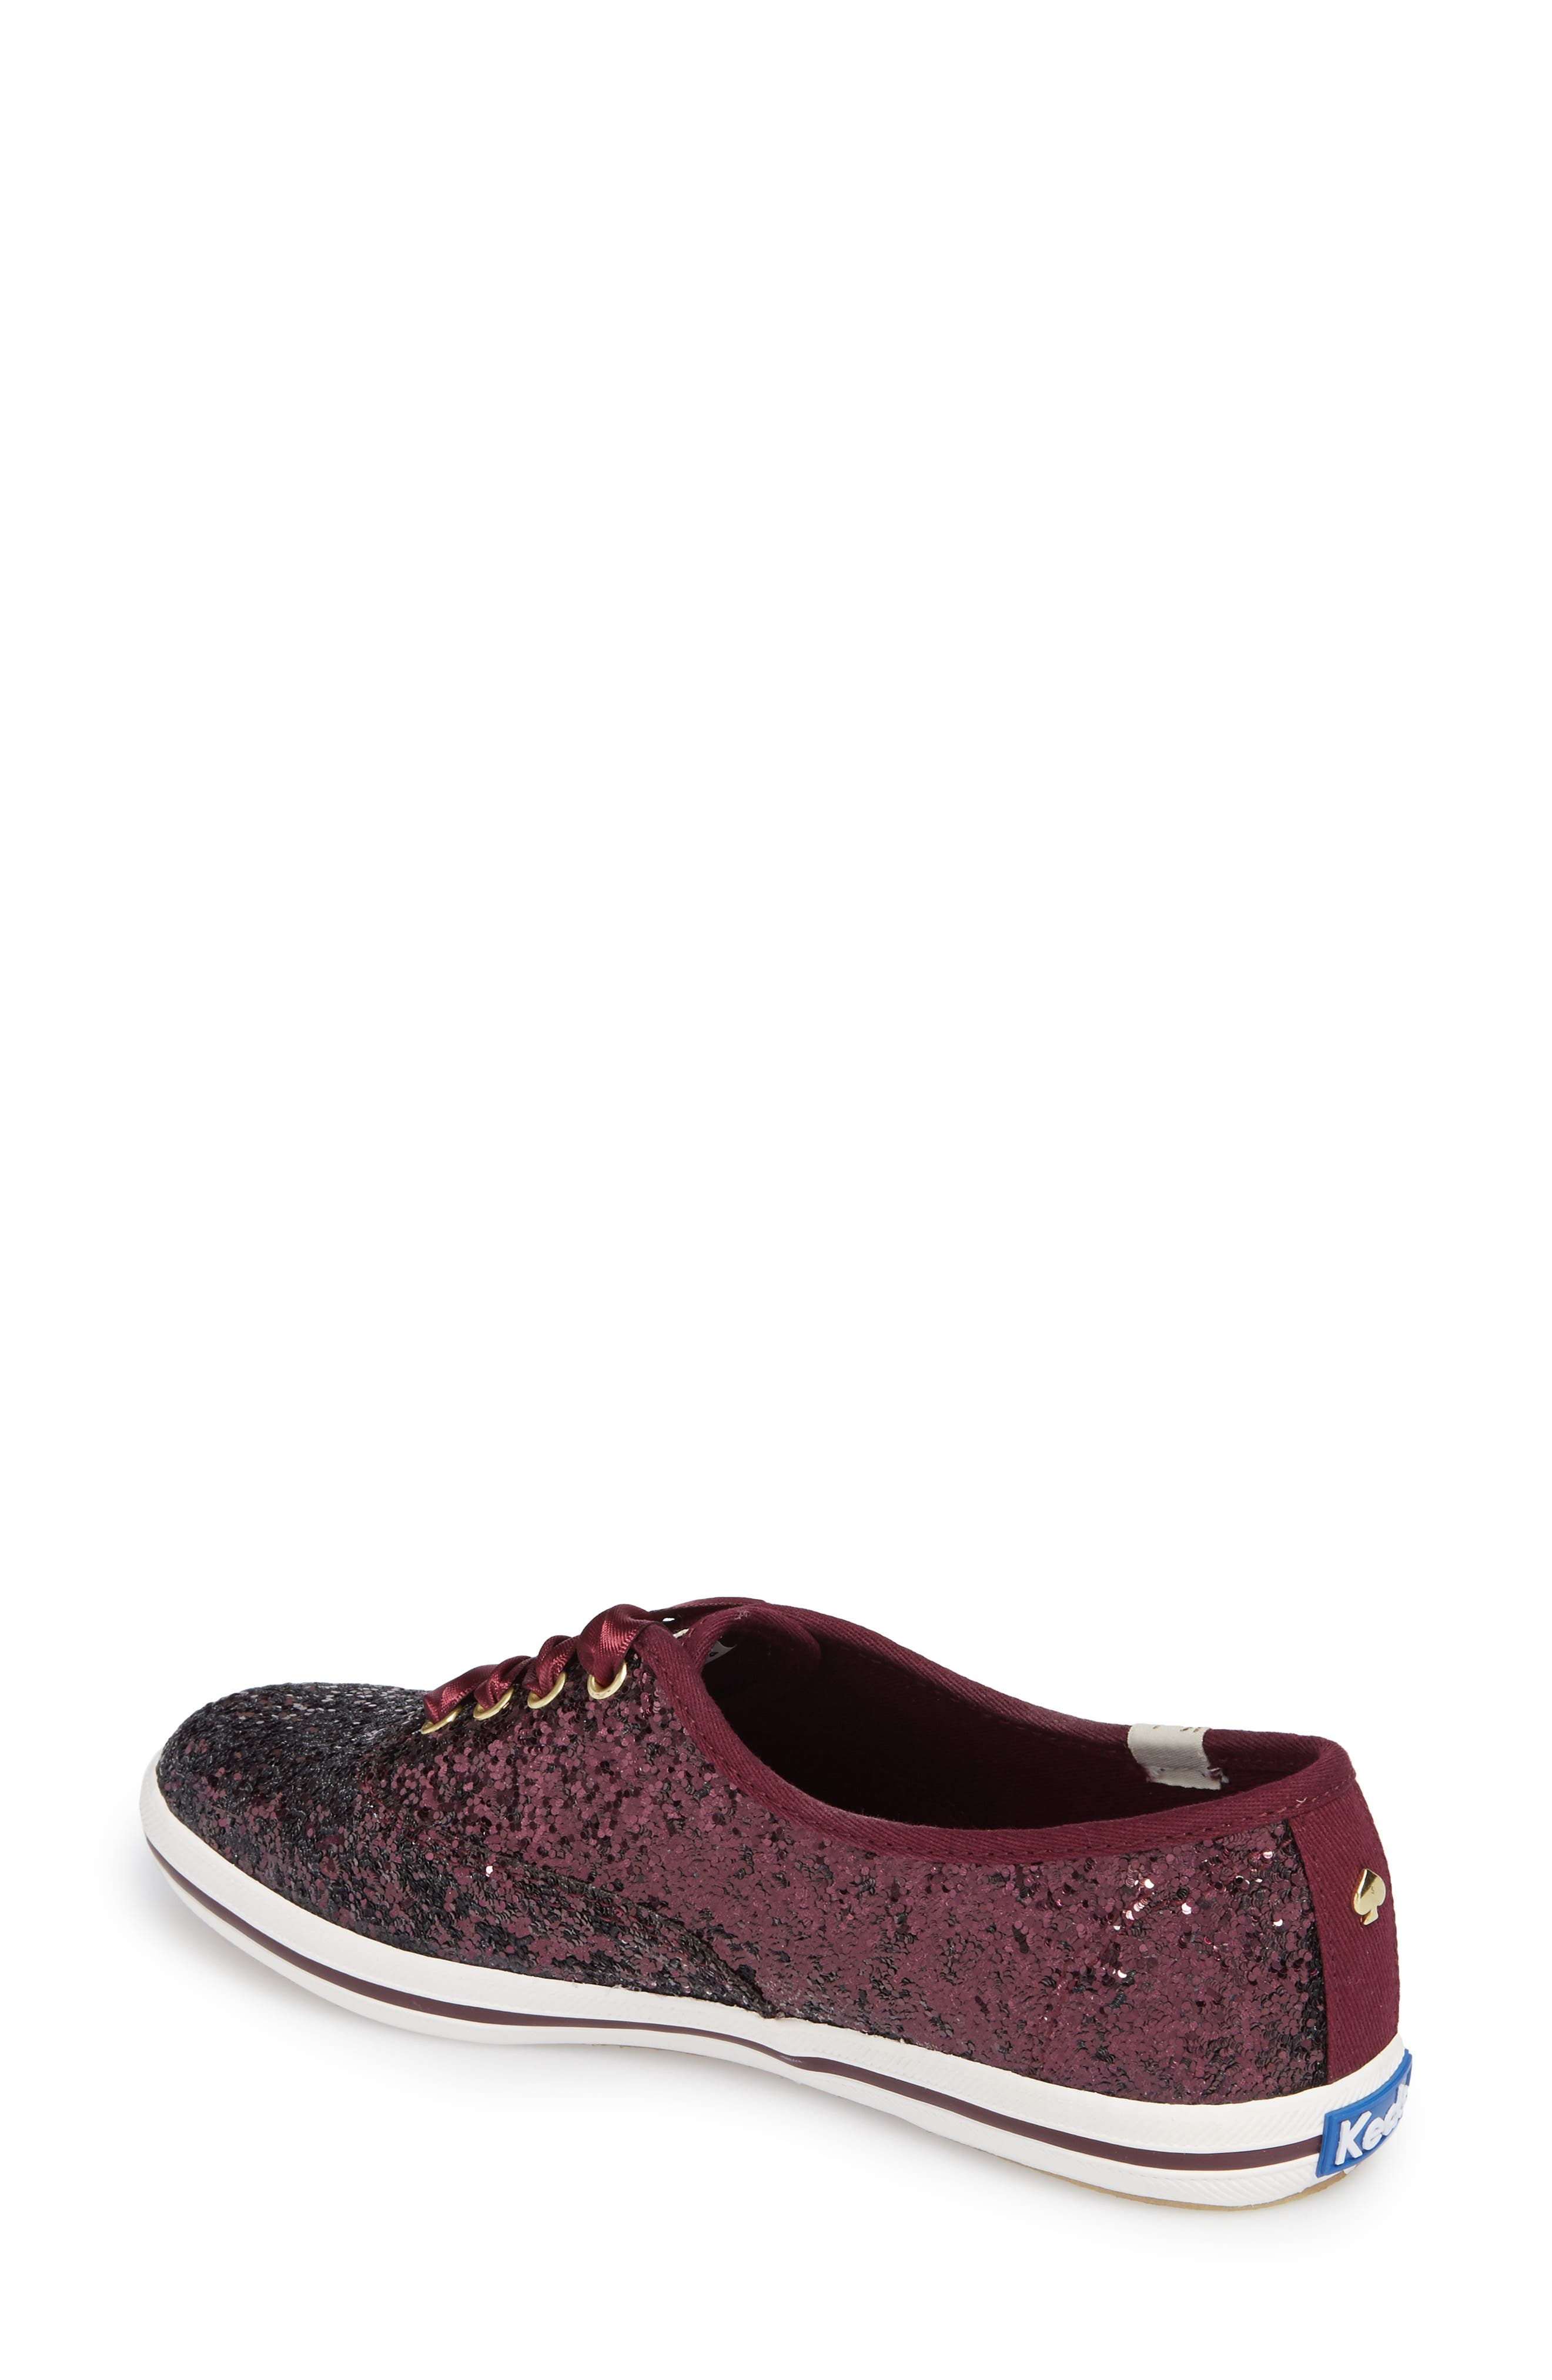 Alternate Image 2  - Keds® for kate spade new york glitter sneaker (Women)